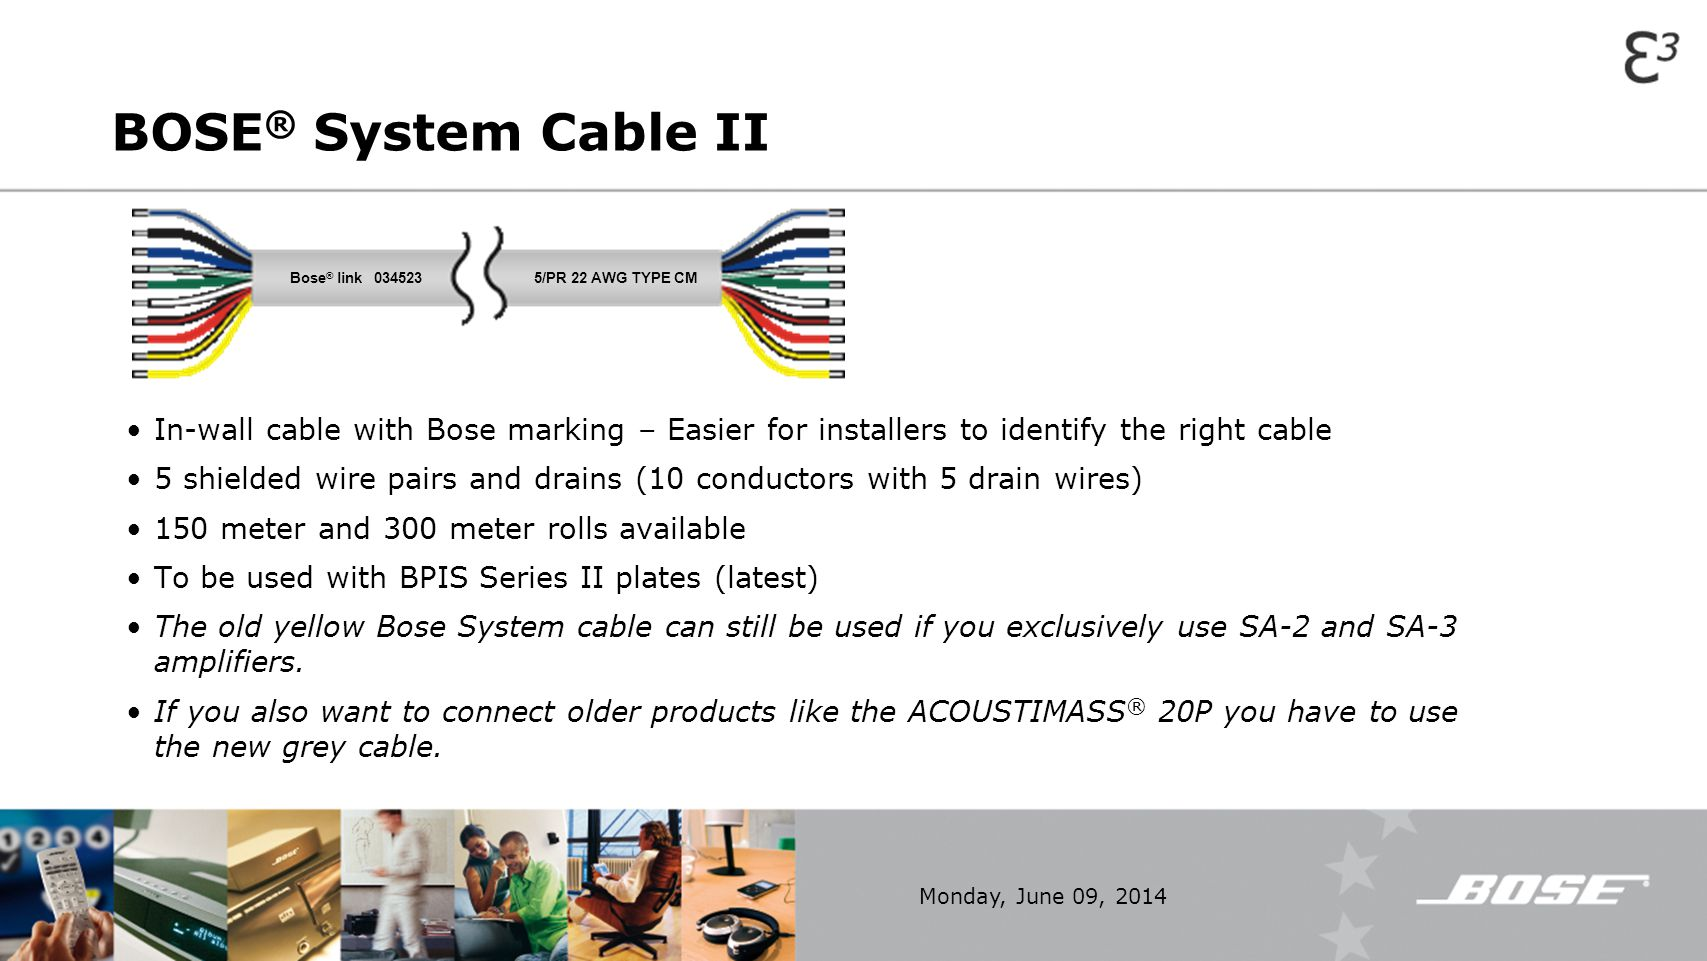 BOSE%C2%AE+System+Cable+II+Bose%C2%AE+link+034523.+5%2FPR+22+AWG+TYPE+CM.+In wall+cable+with+Bose+marking+%E2%80%93+Easier+for+installers+to+identify+the+right+cable. bose� link music throughout your home ppt video online download Bose Amplifier Wiring Diagram at eliteediting.co